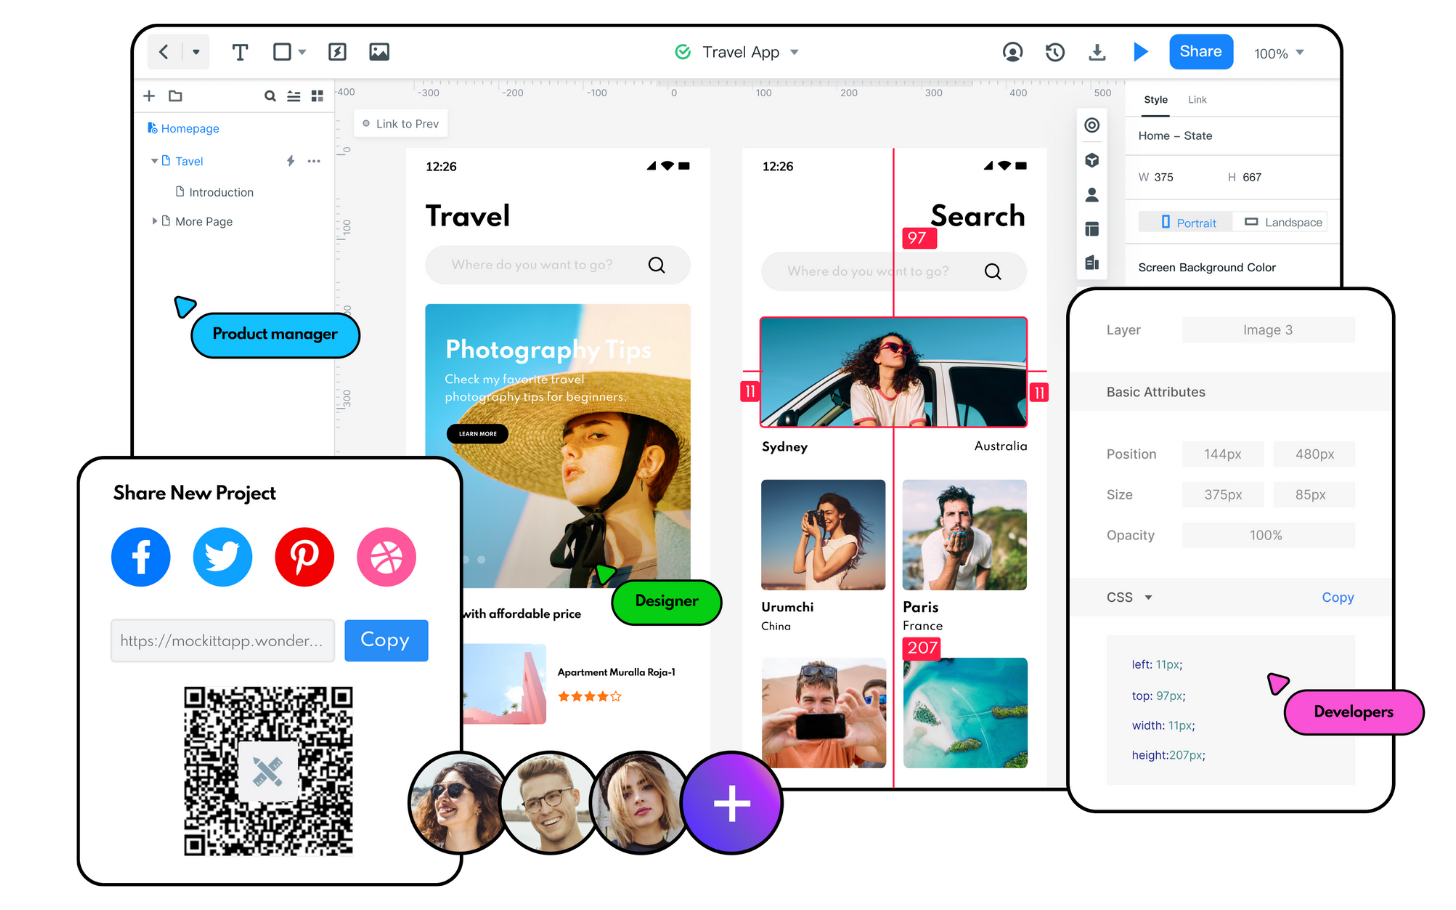 Mobile-App-Designing-101 Here are the 5 Best Tools for Mobile App Designers [For Beginners and Pros]